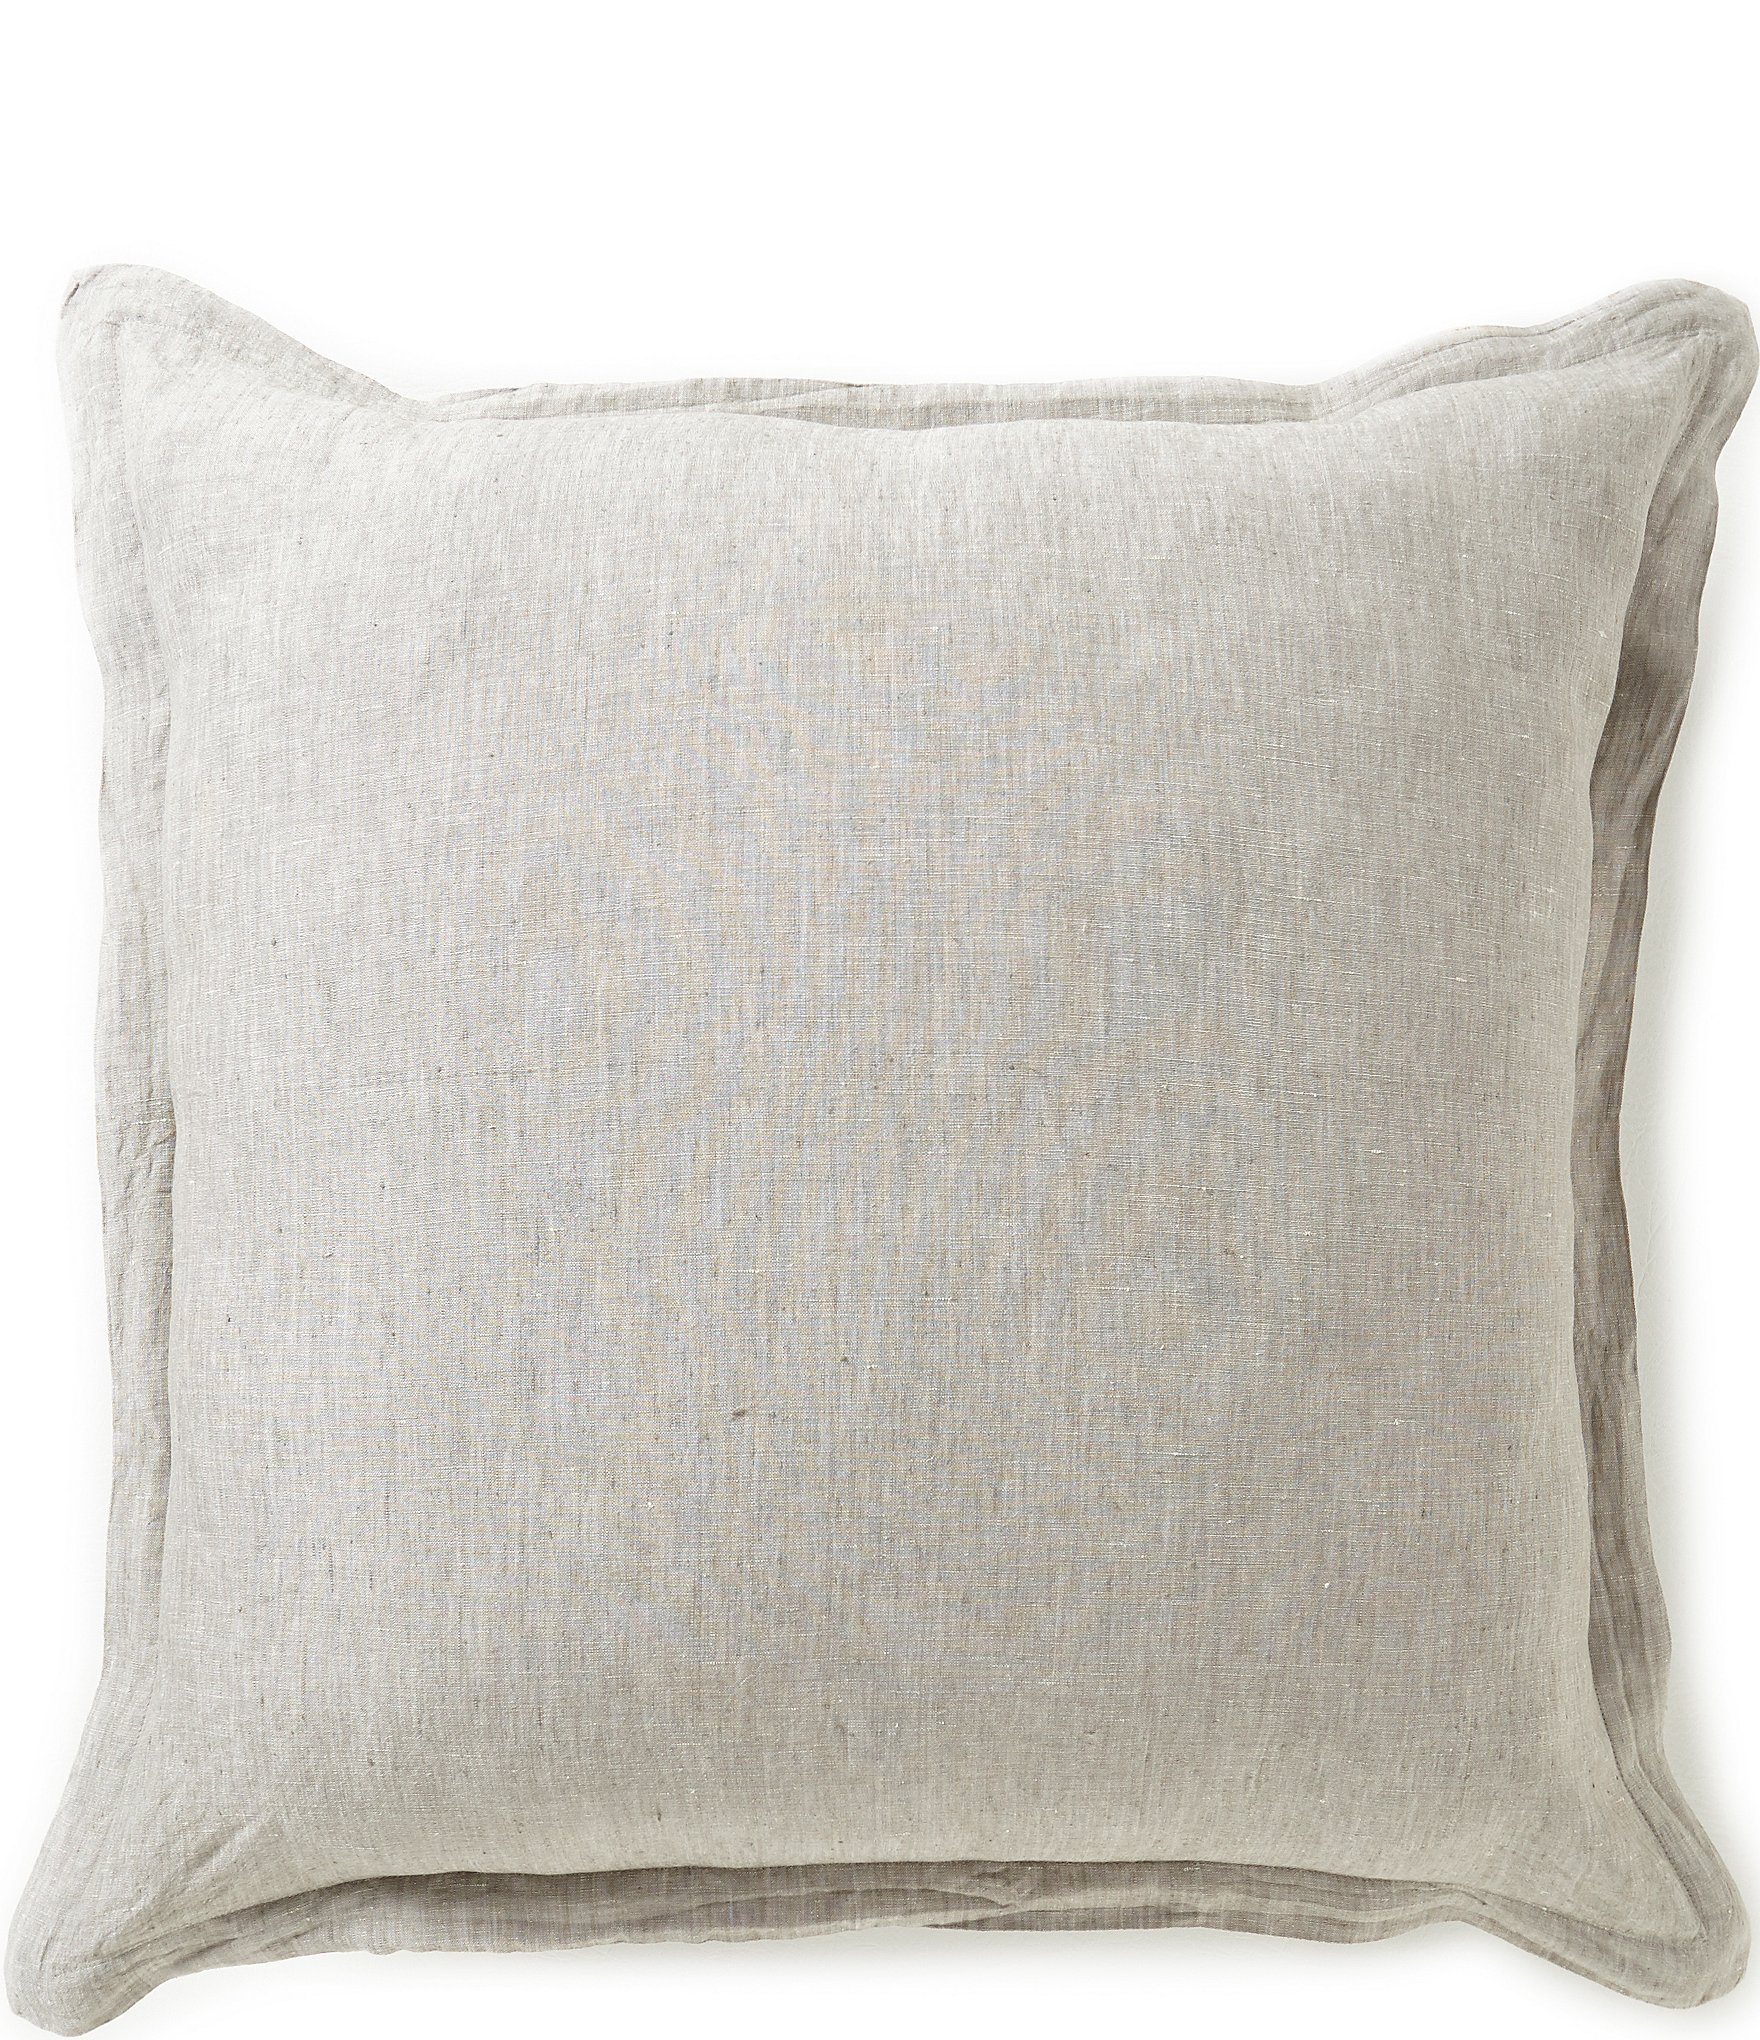 Circle Track Supply >> Southern Living Heirloom Linen Euro Sham | Dillard's